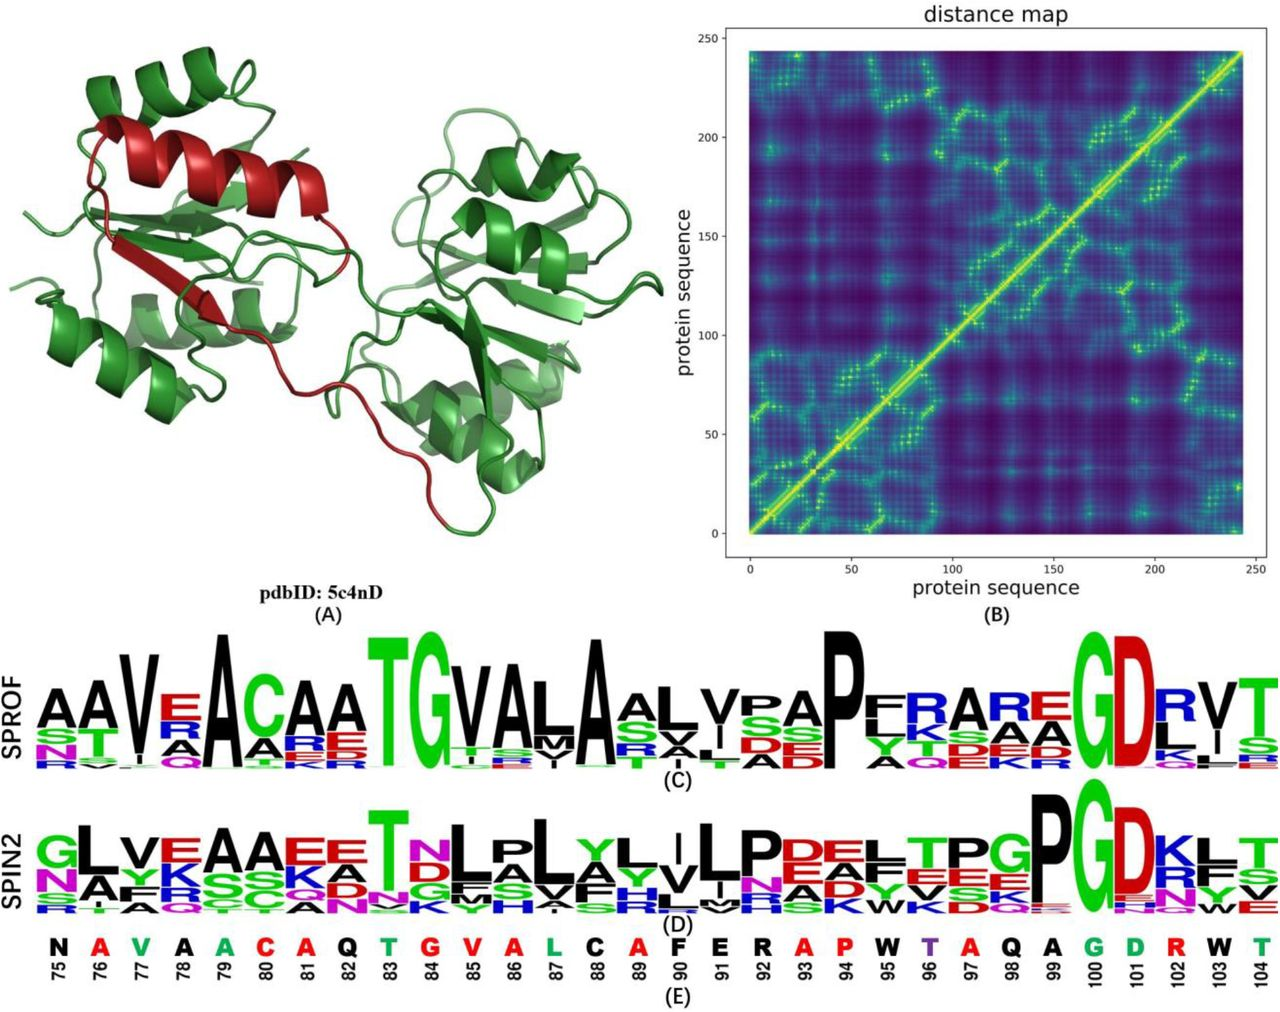 To Improve Protein Sequence Profile Prediction through Image